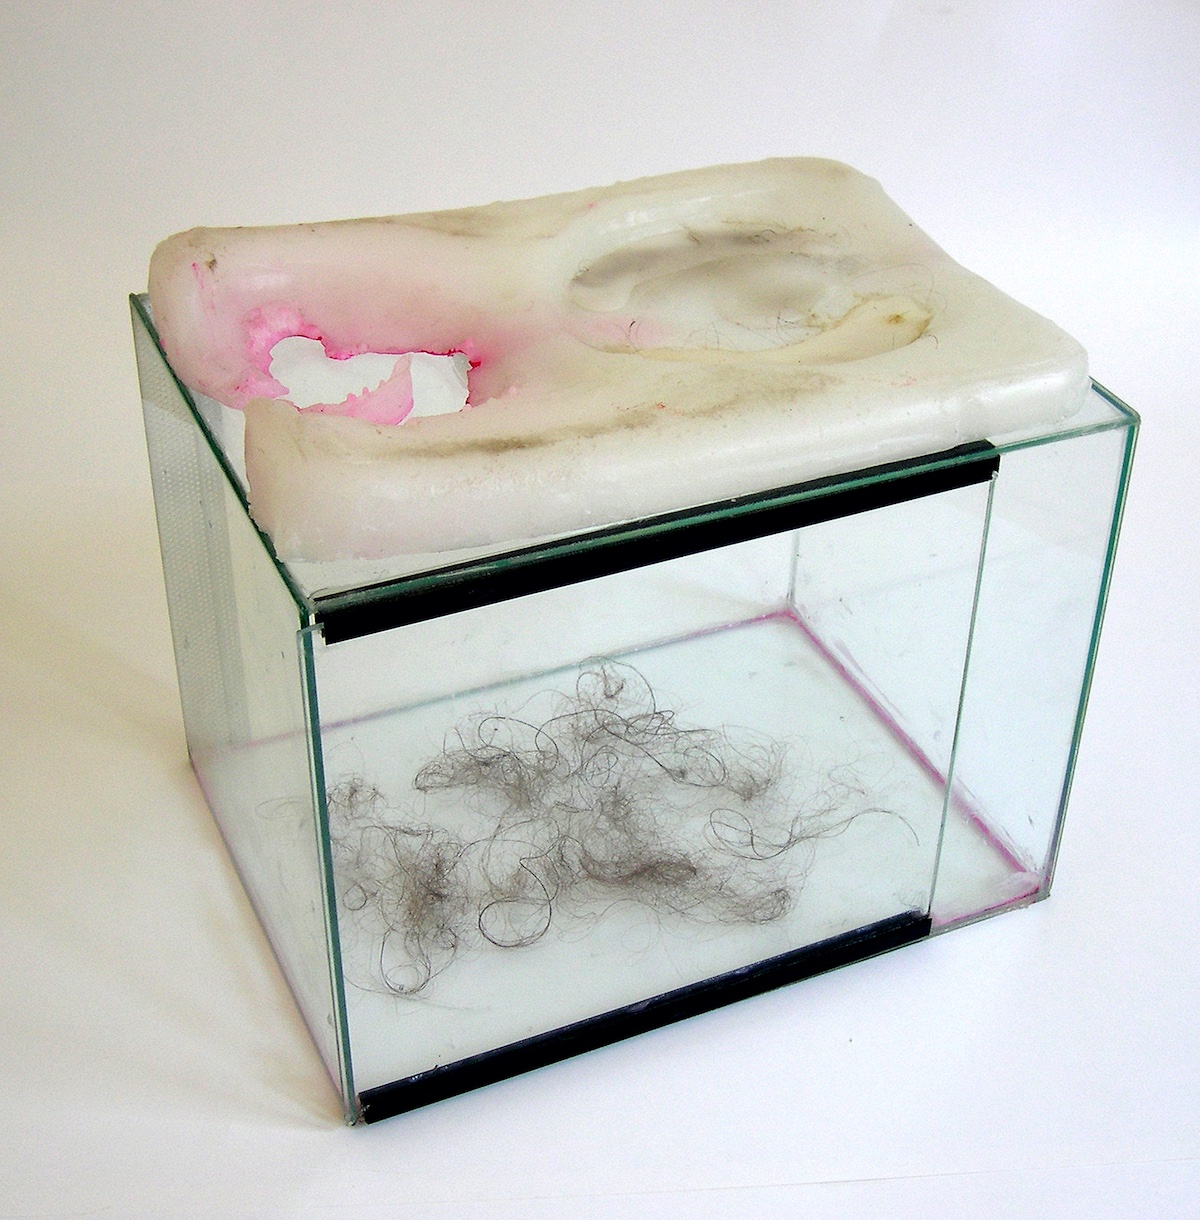 "Claudia Barthoi ""115 Maujer [Alicia's Keys]"",2007, Installation, glass case, urine enclosed in wax, human hair, conditioner, dust, vaseline, lippgloss, pigment, original apartmentkeys, tape, 40 x 30 x 36 cm [16""x12""x14""]"